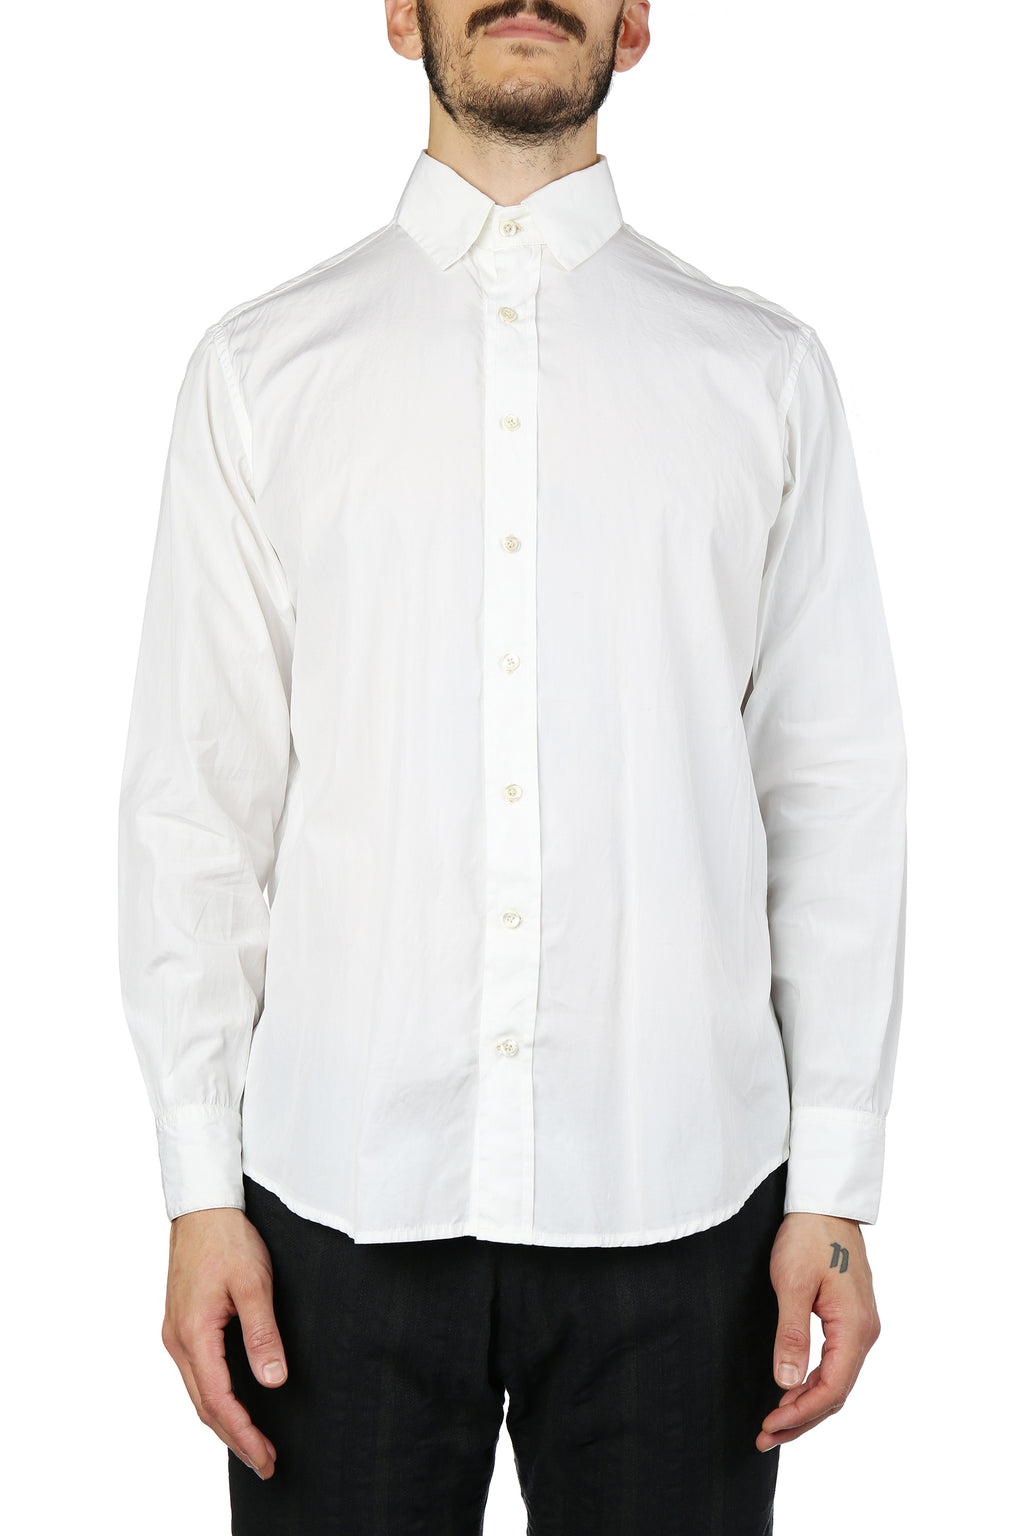 GEOFFREY B SMALL MEN HANDMADE 3 REMOVABLE COLLAR ORGANIC L.PARISOTTO COTTON SHIRT WITH HANDMADE BUTTONHOLES AND BUTTONS